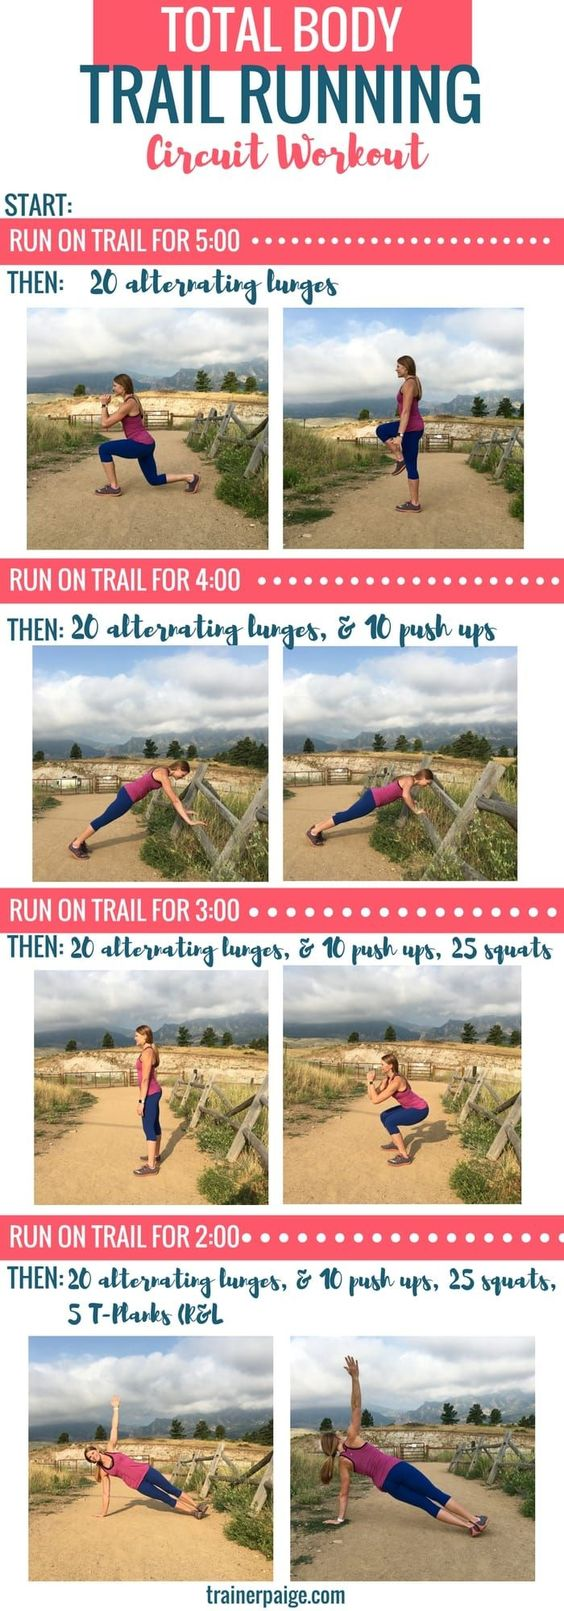 total body trail running circuit workout